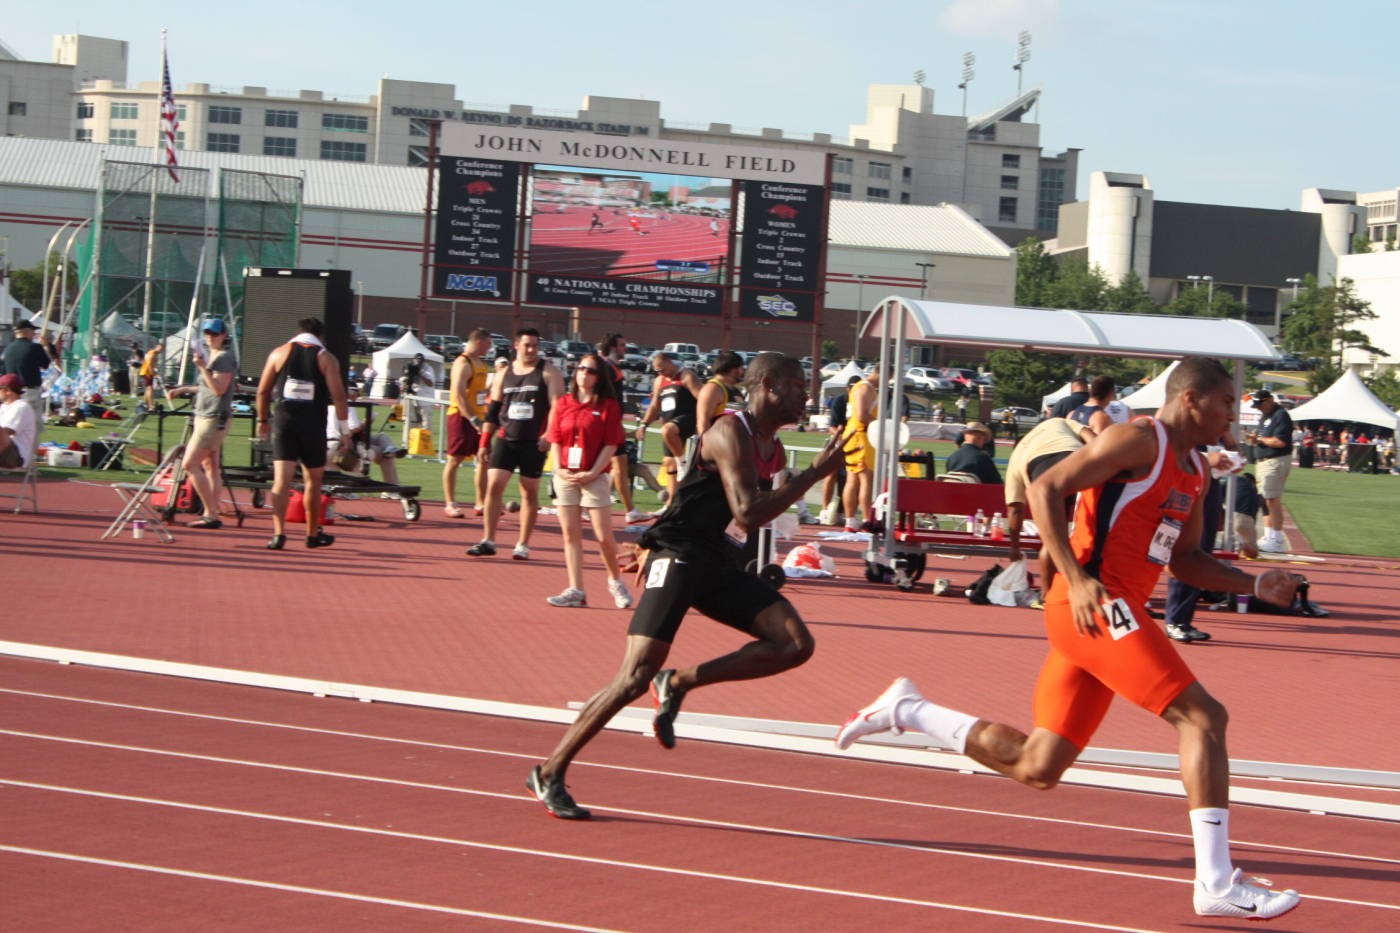 Charles Clark won his 200m heat.